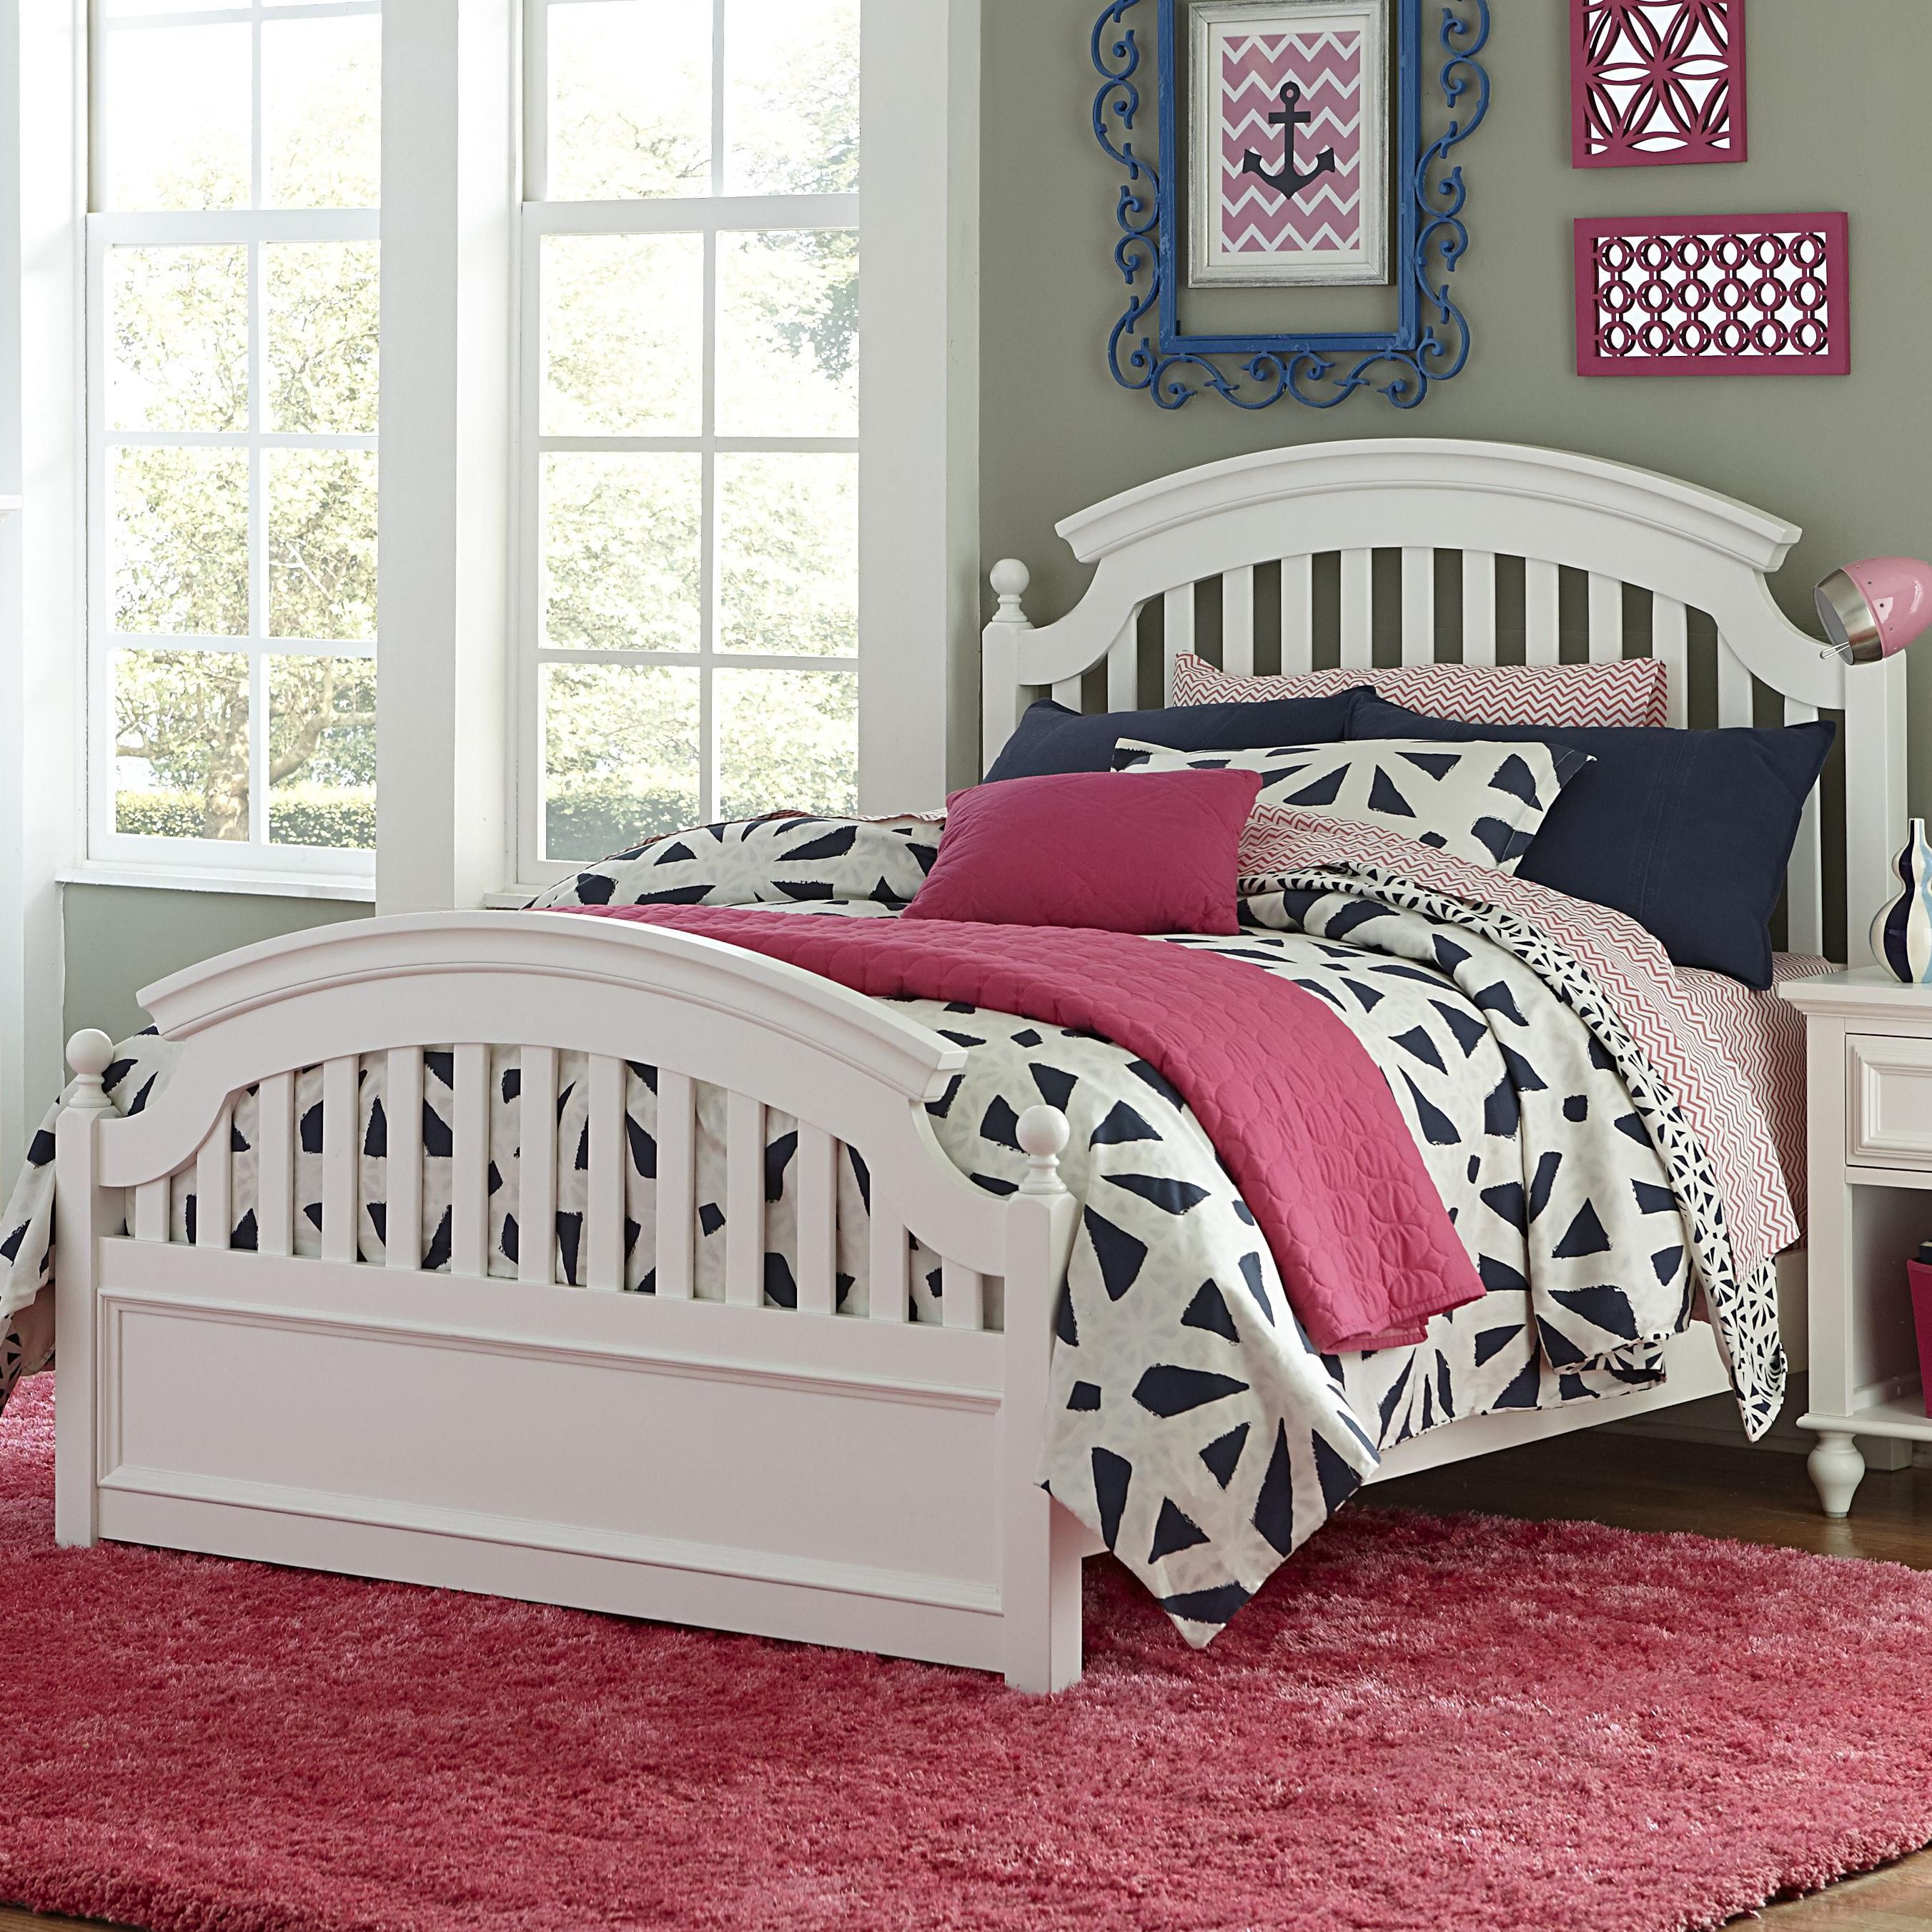 academy twin panel bed by legacy classic kids gena kz a ocuk odasi